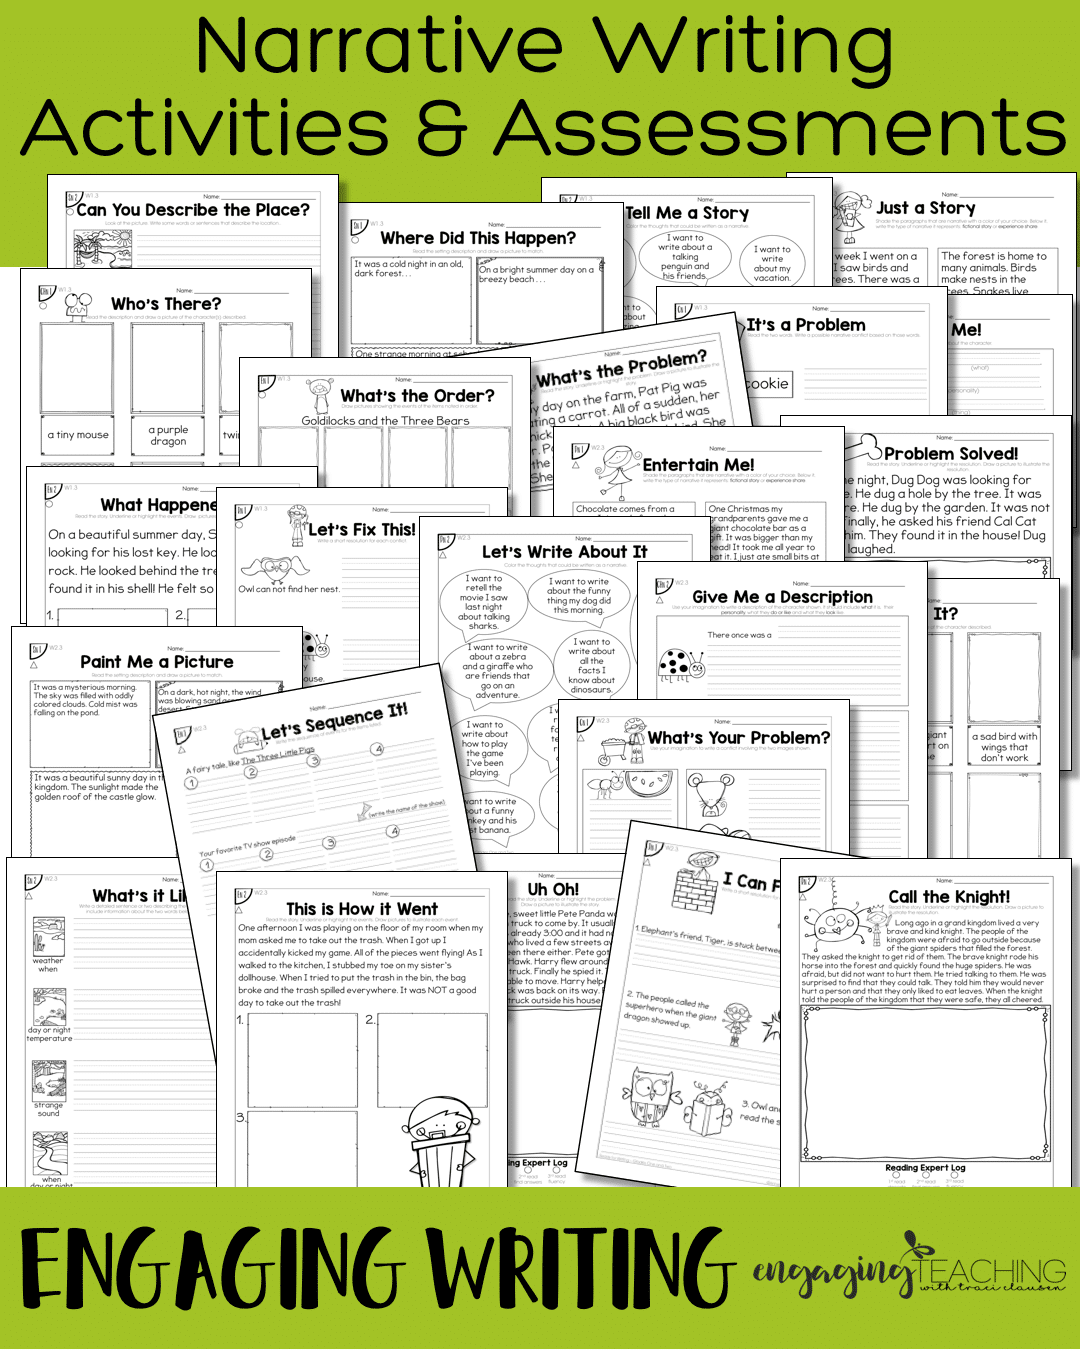 Narrative Activities & Assessments